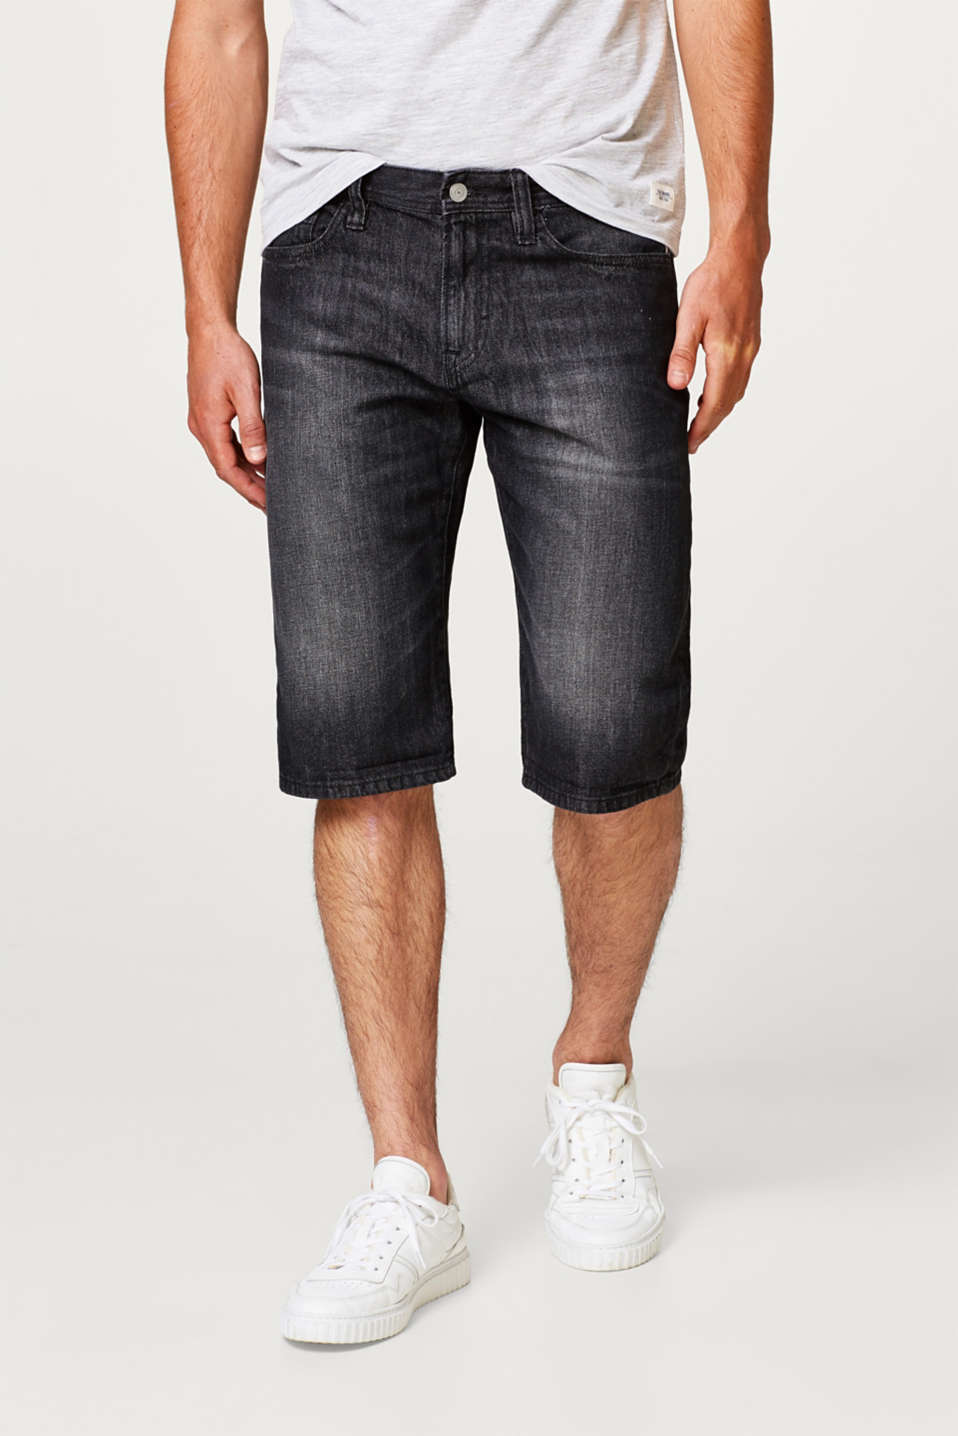 edc - Denim shorts with a vintage garment wash, in cotton